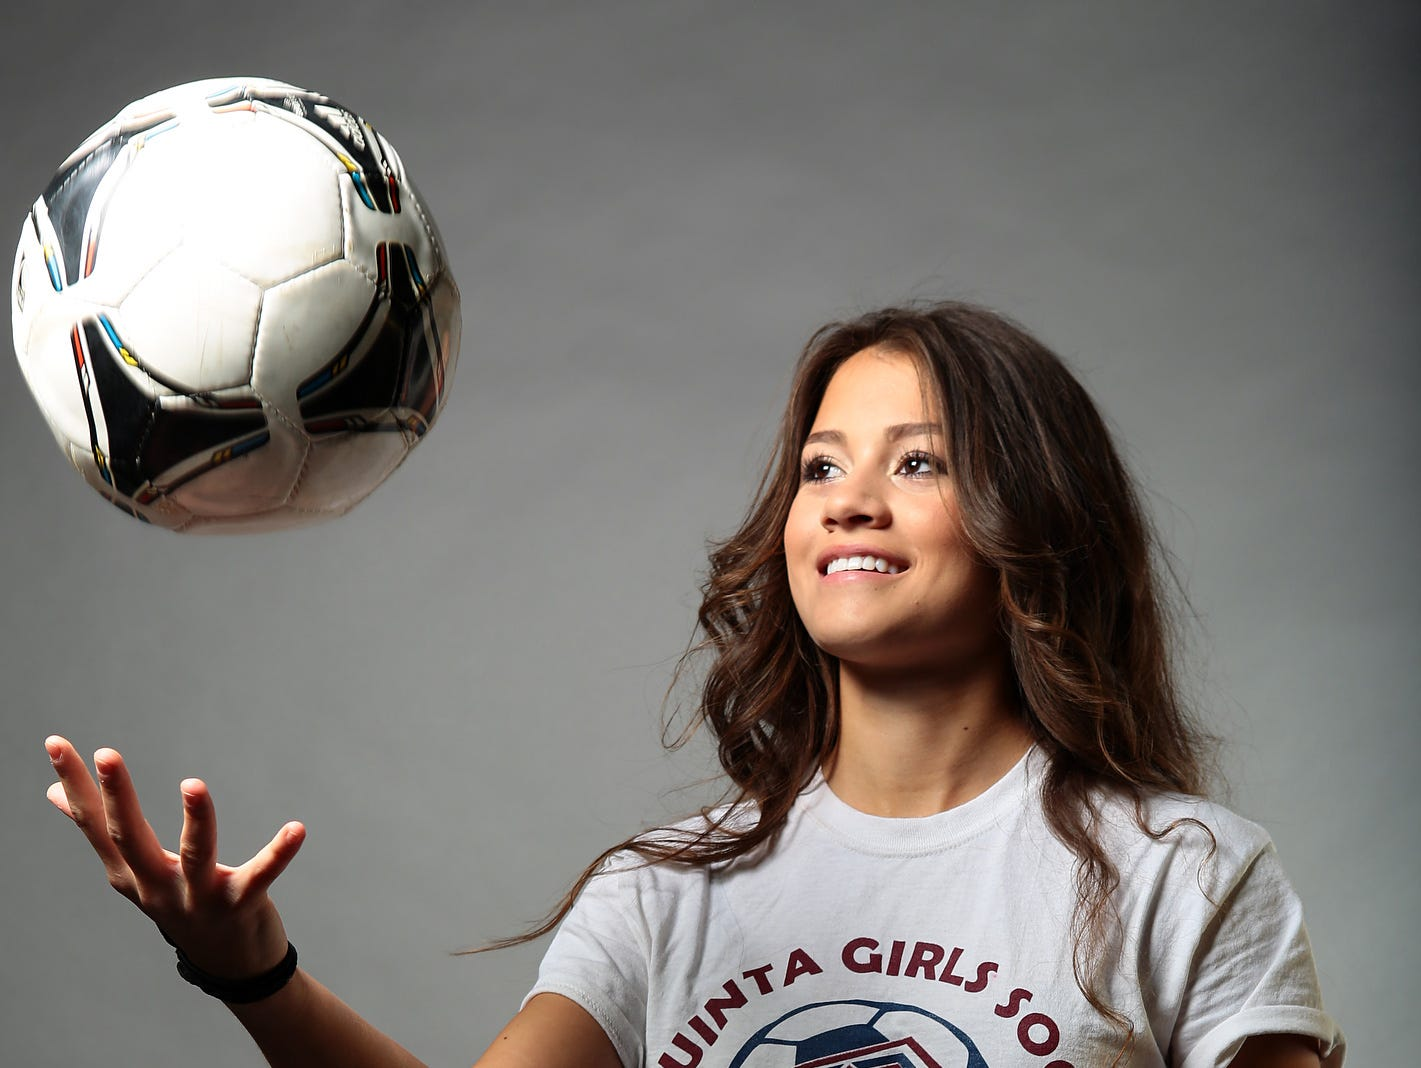 La Quinta senior Aileen Galicia helped the Blackhawks reach the CIF semifinals with the 23 goals she recorded this season. Galicia has signed to play college soccer at New Mexico State. Photographed on Thursday, March 12, 2015.